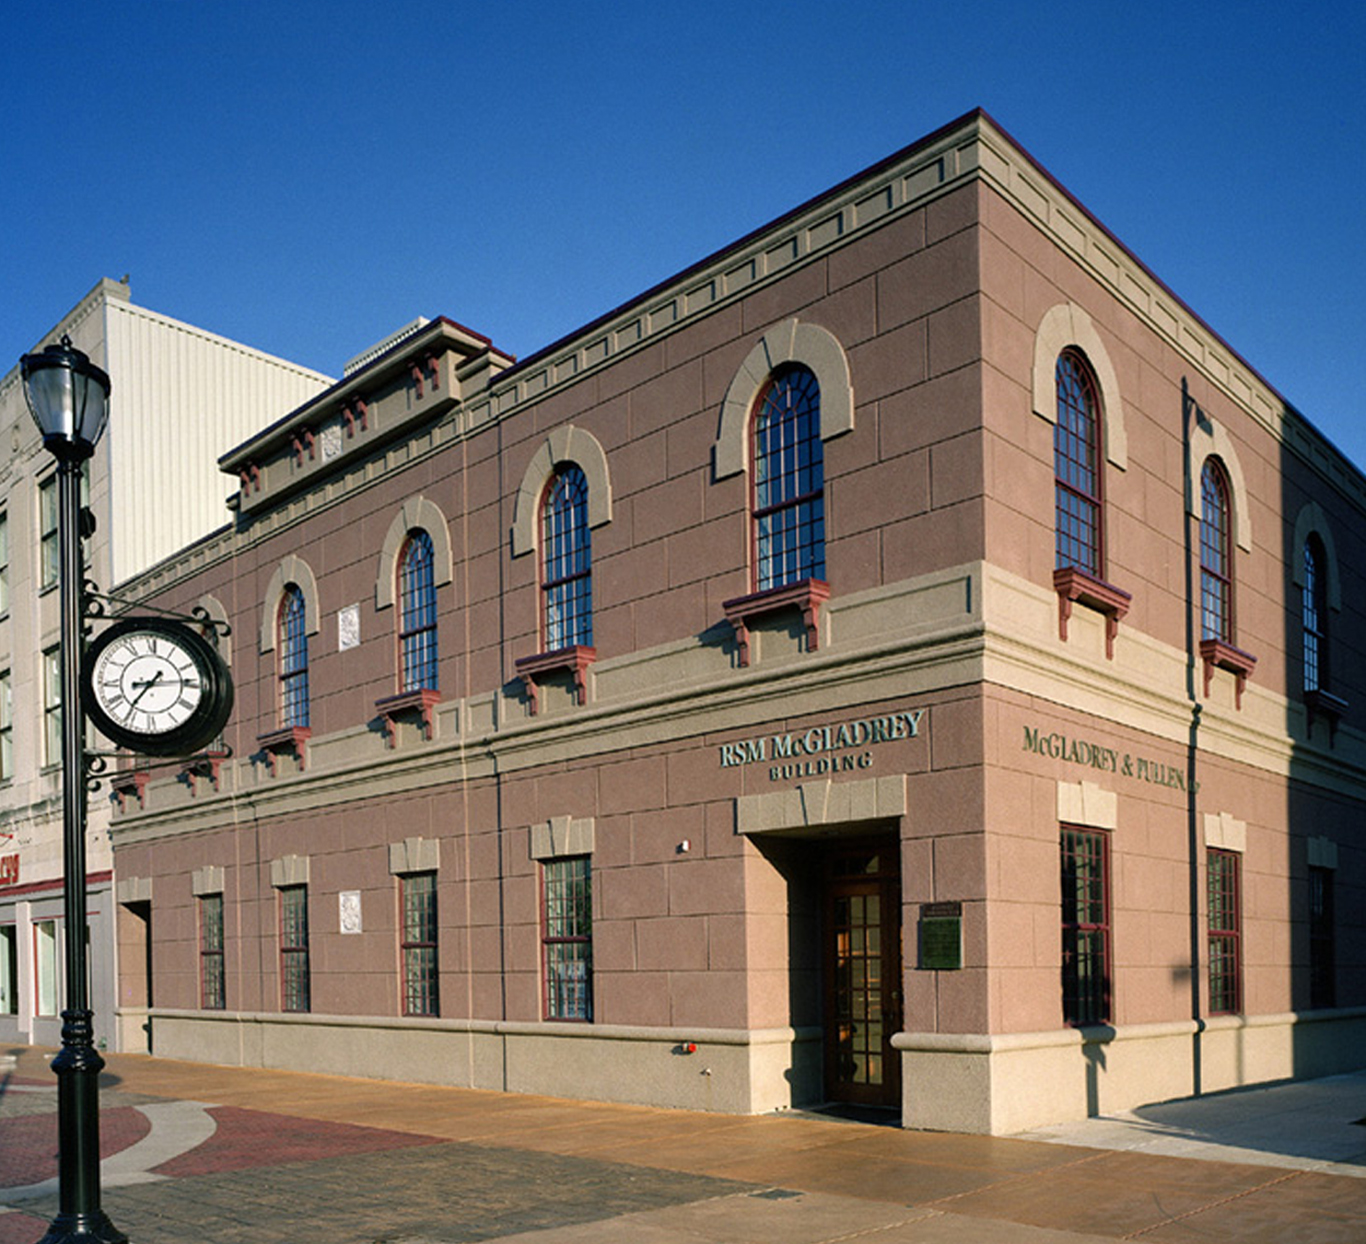 Evan Lloyd Architects provided office architectural services for the McGladdrey Building in Springfield, Illinois. Evan Lloyd Architect's renovation designed the adaptive re-use of an abandoned wood, steel and masonry building in historic downtown Springfield for professional offices.